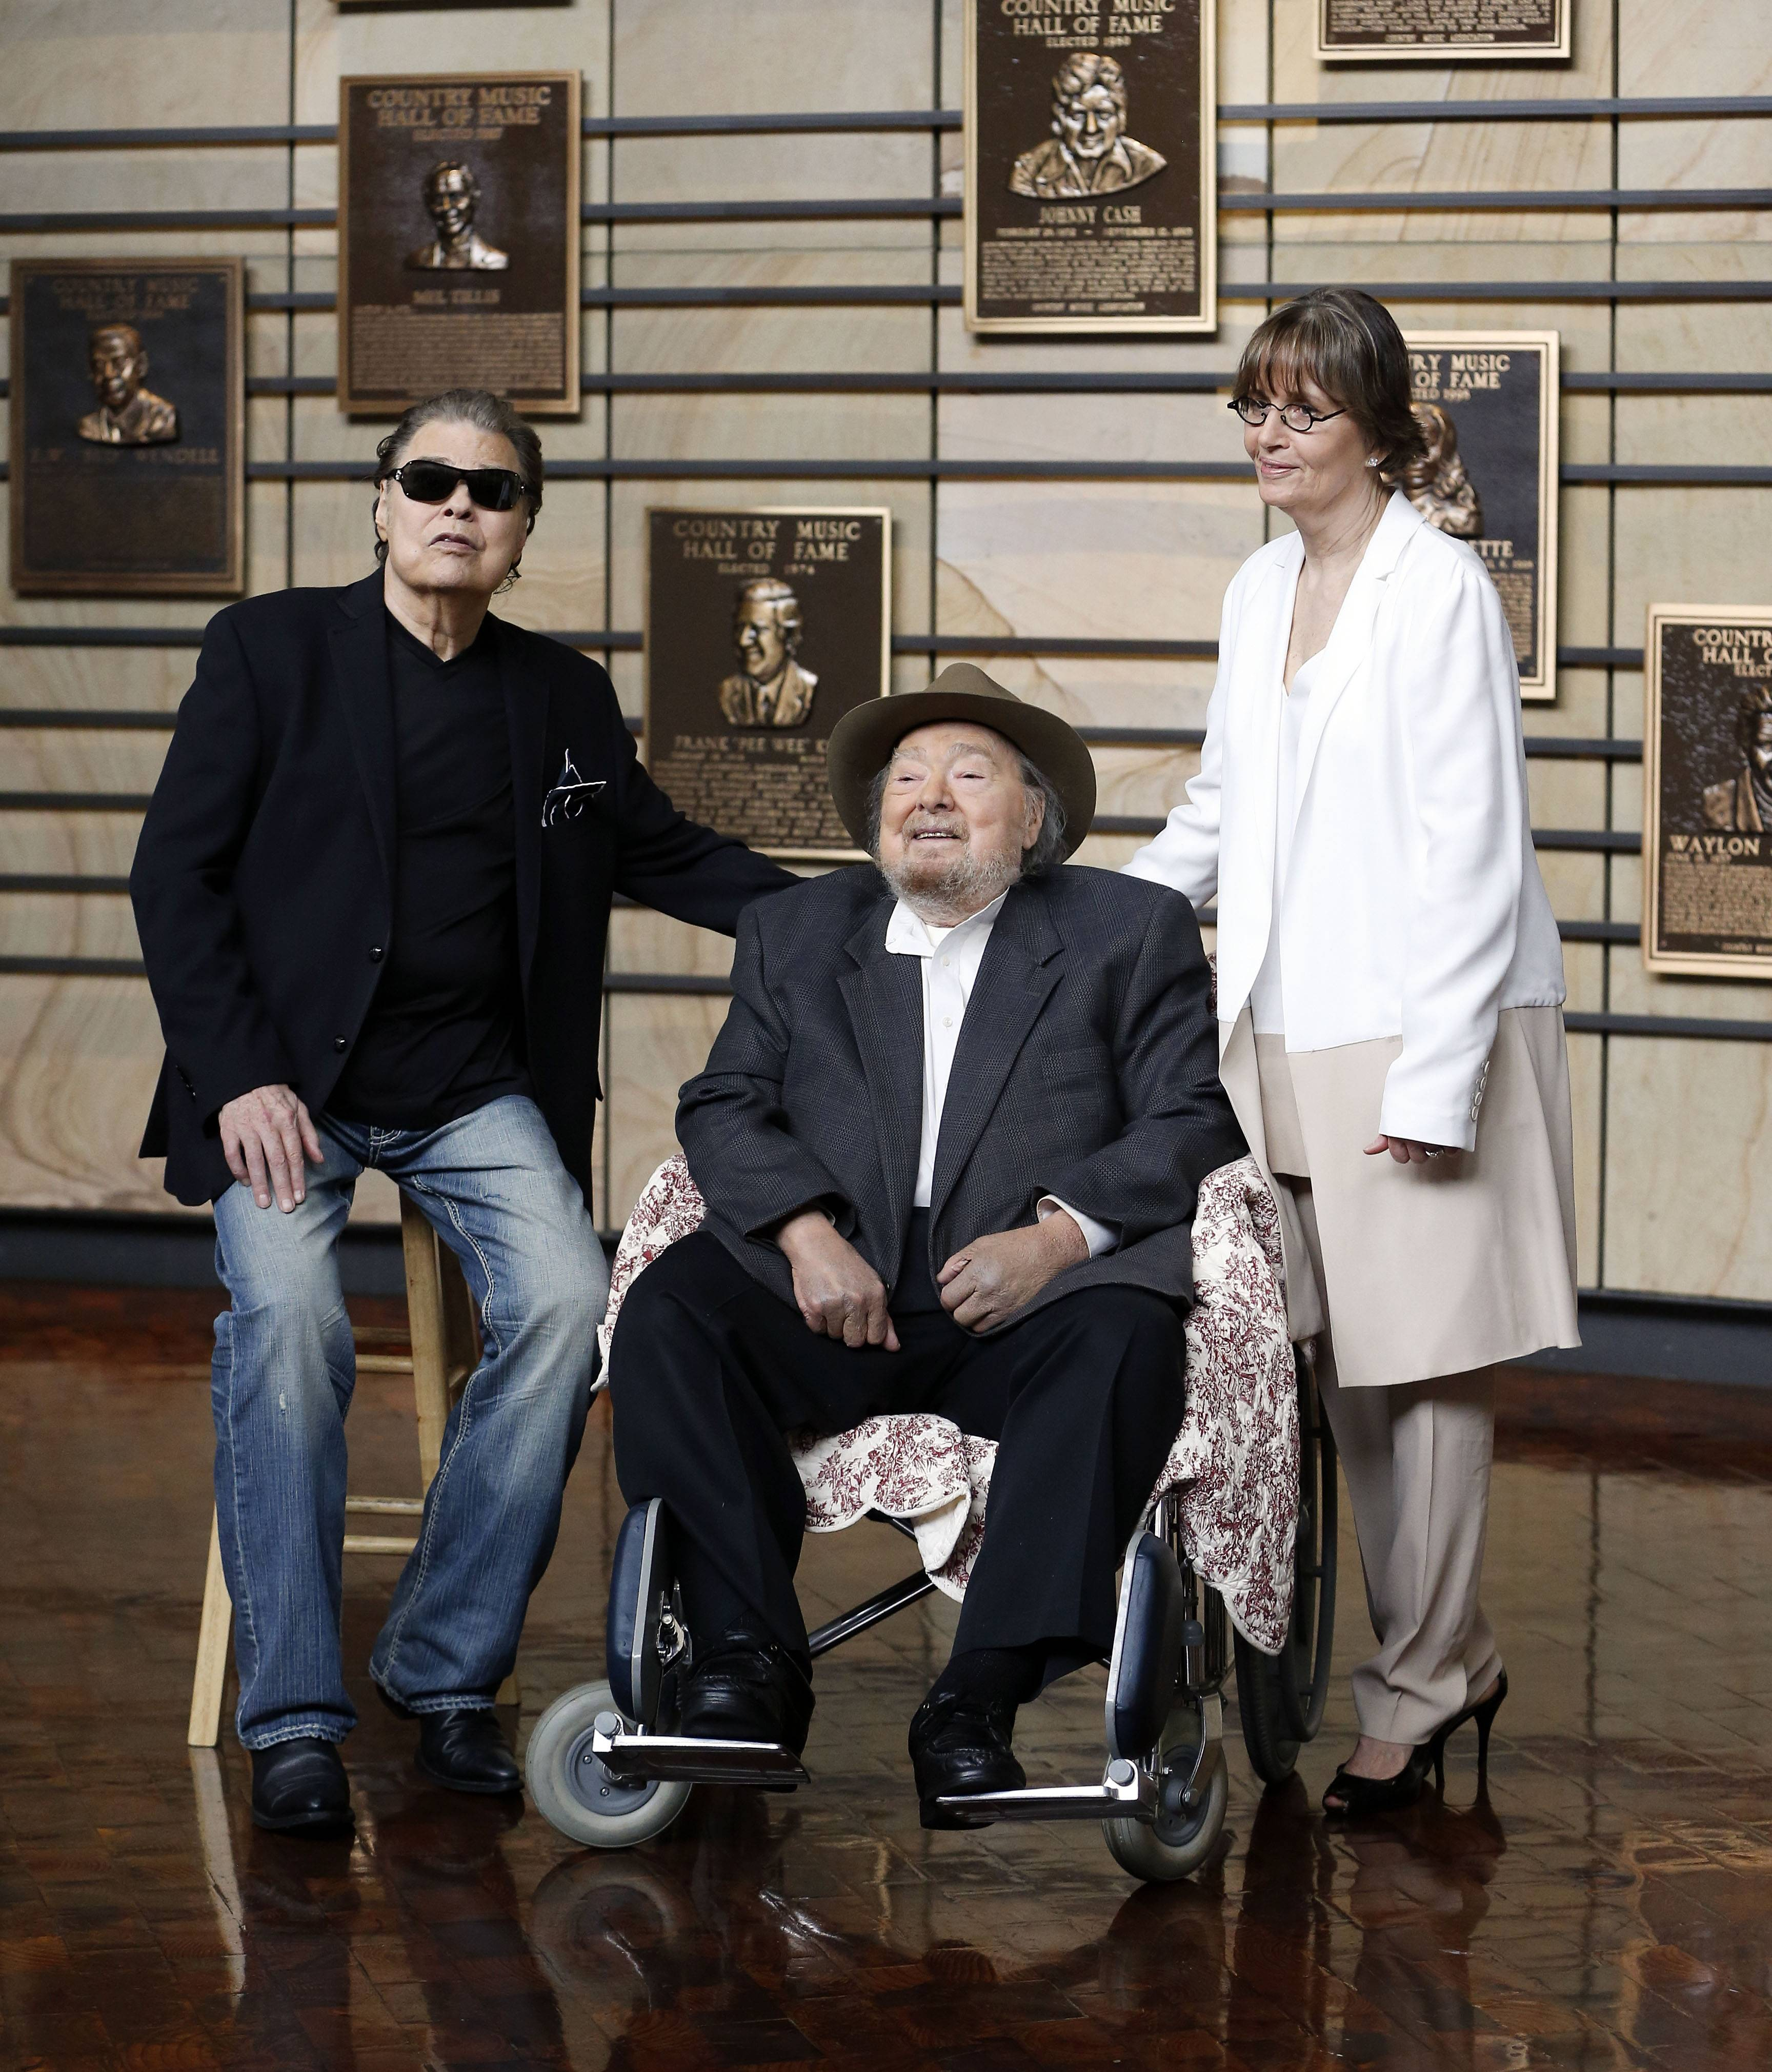 Ronnie Milsap, left, Mac Wiseman and Suzi Cochran, representing her late songwriter husband, Hank Cochran, were introduced as the new inductees into the Country Music Hall of Fame Tuesday in Nashville, Tenn.